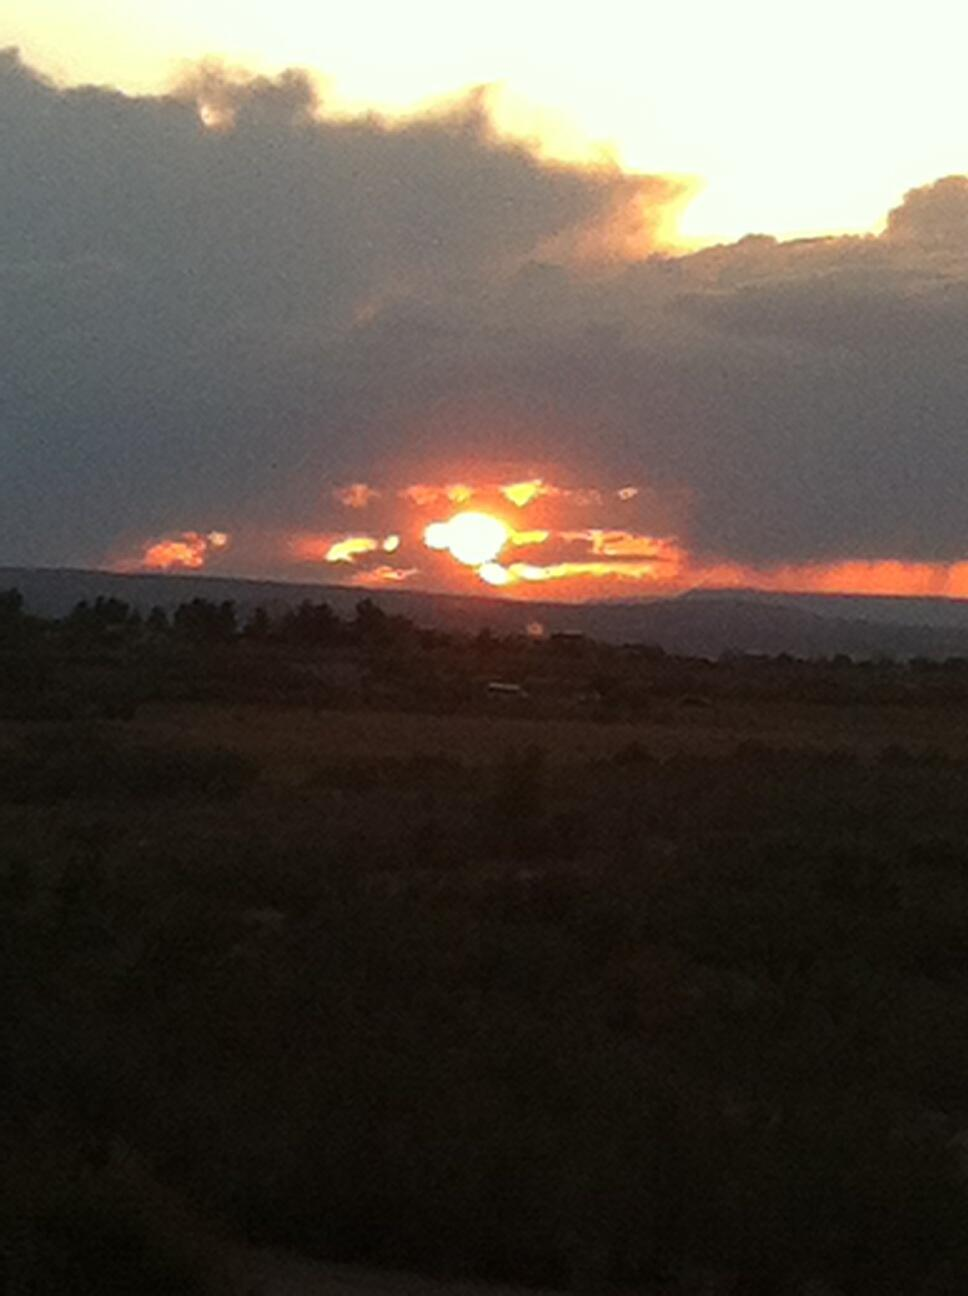 Sunset over Lake Powell in Page, Arizona http://t.co/jqdjct5lrP